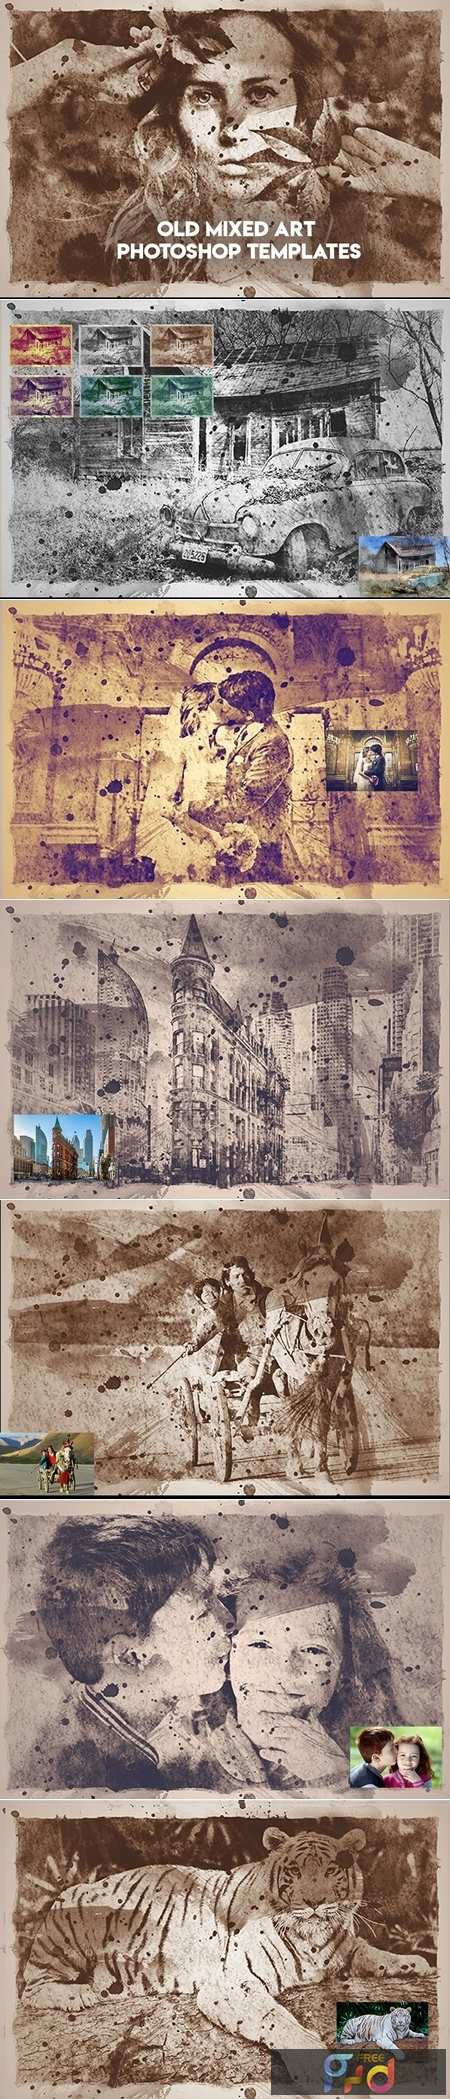 Old Mixed Art Photoshop Templates 1